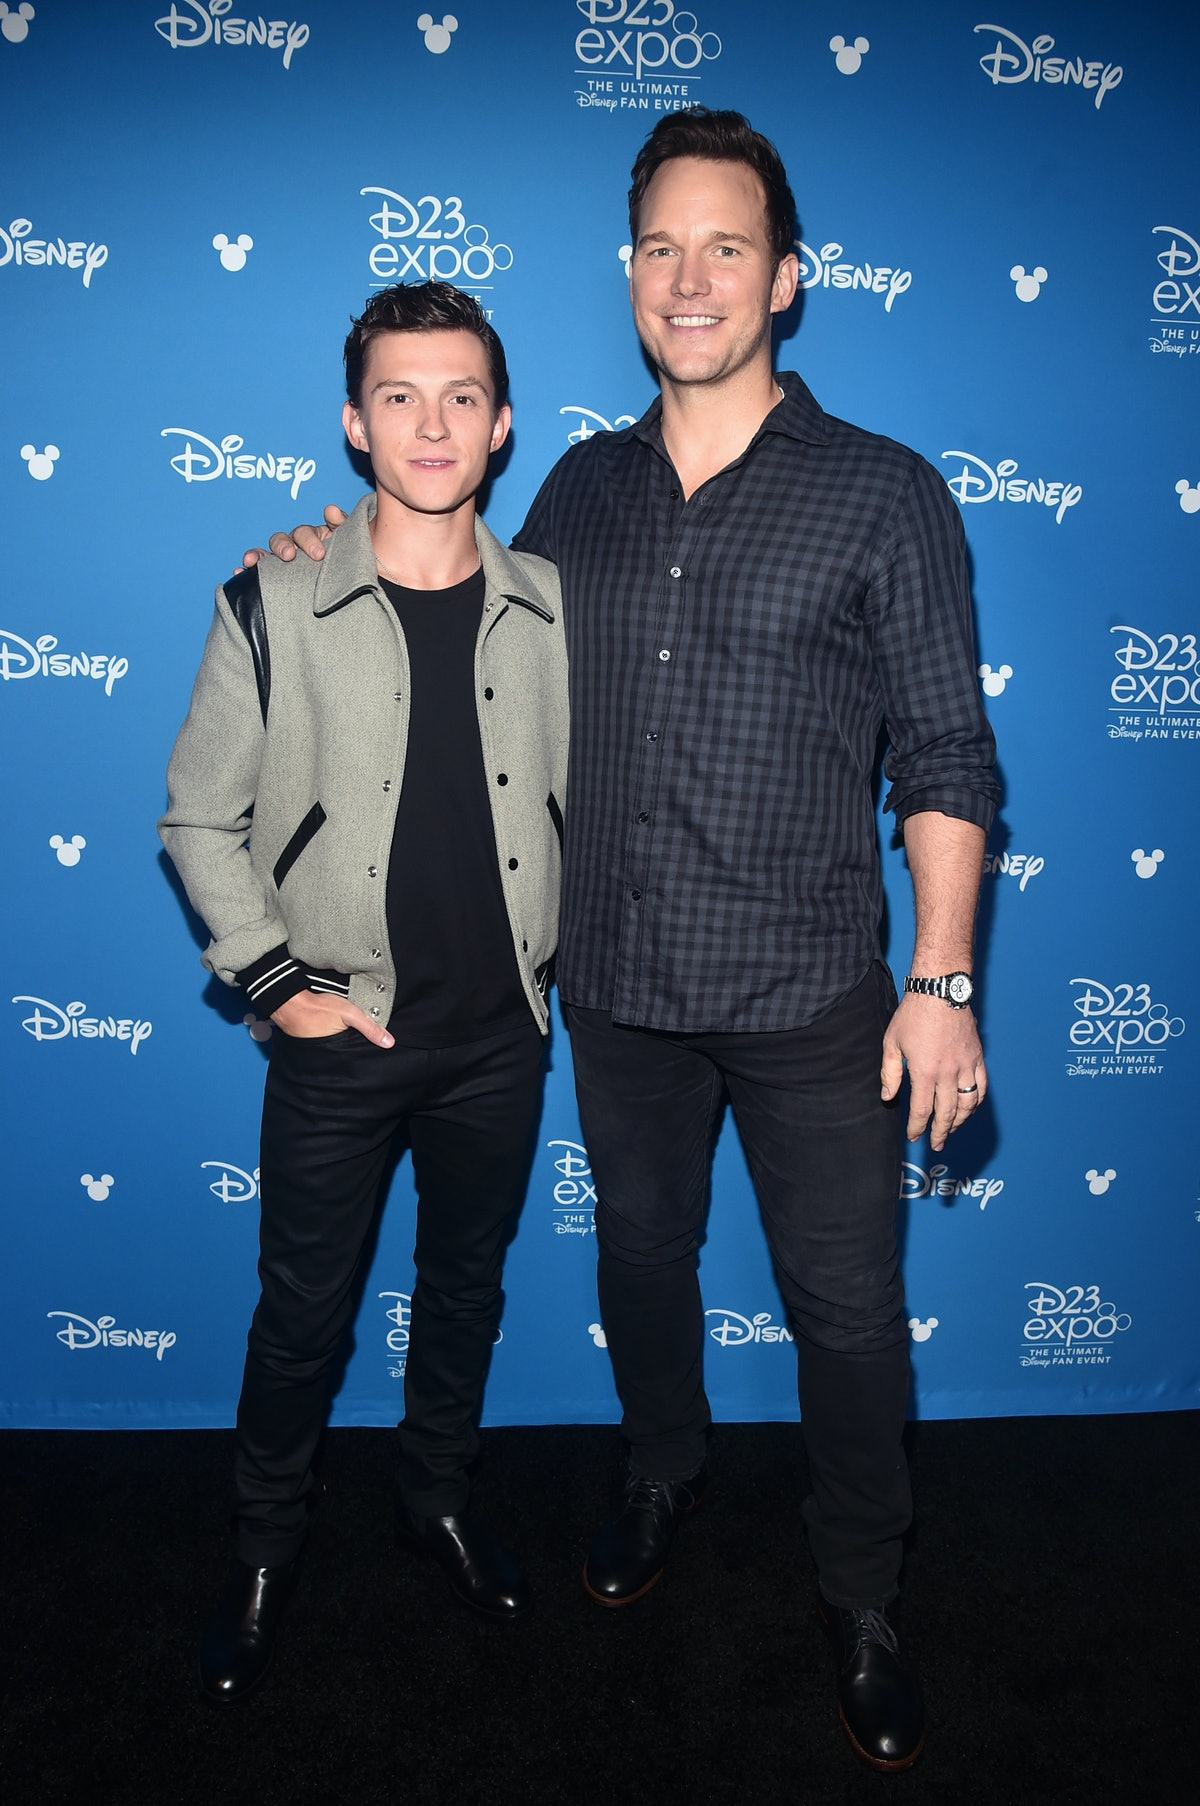 Tom Holland and Chris Pratt's quotes about deleting social media are pretty relatable.